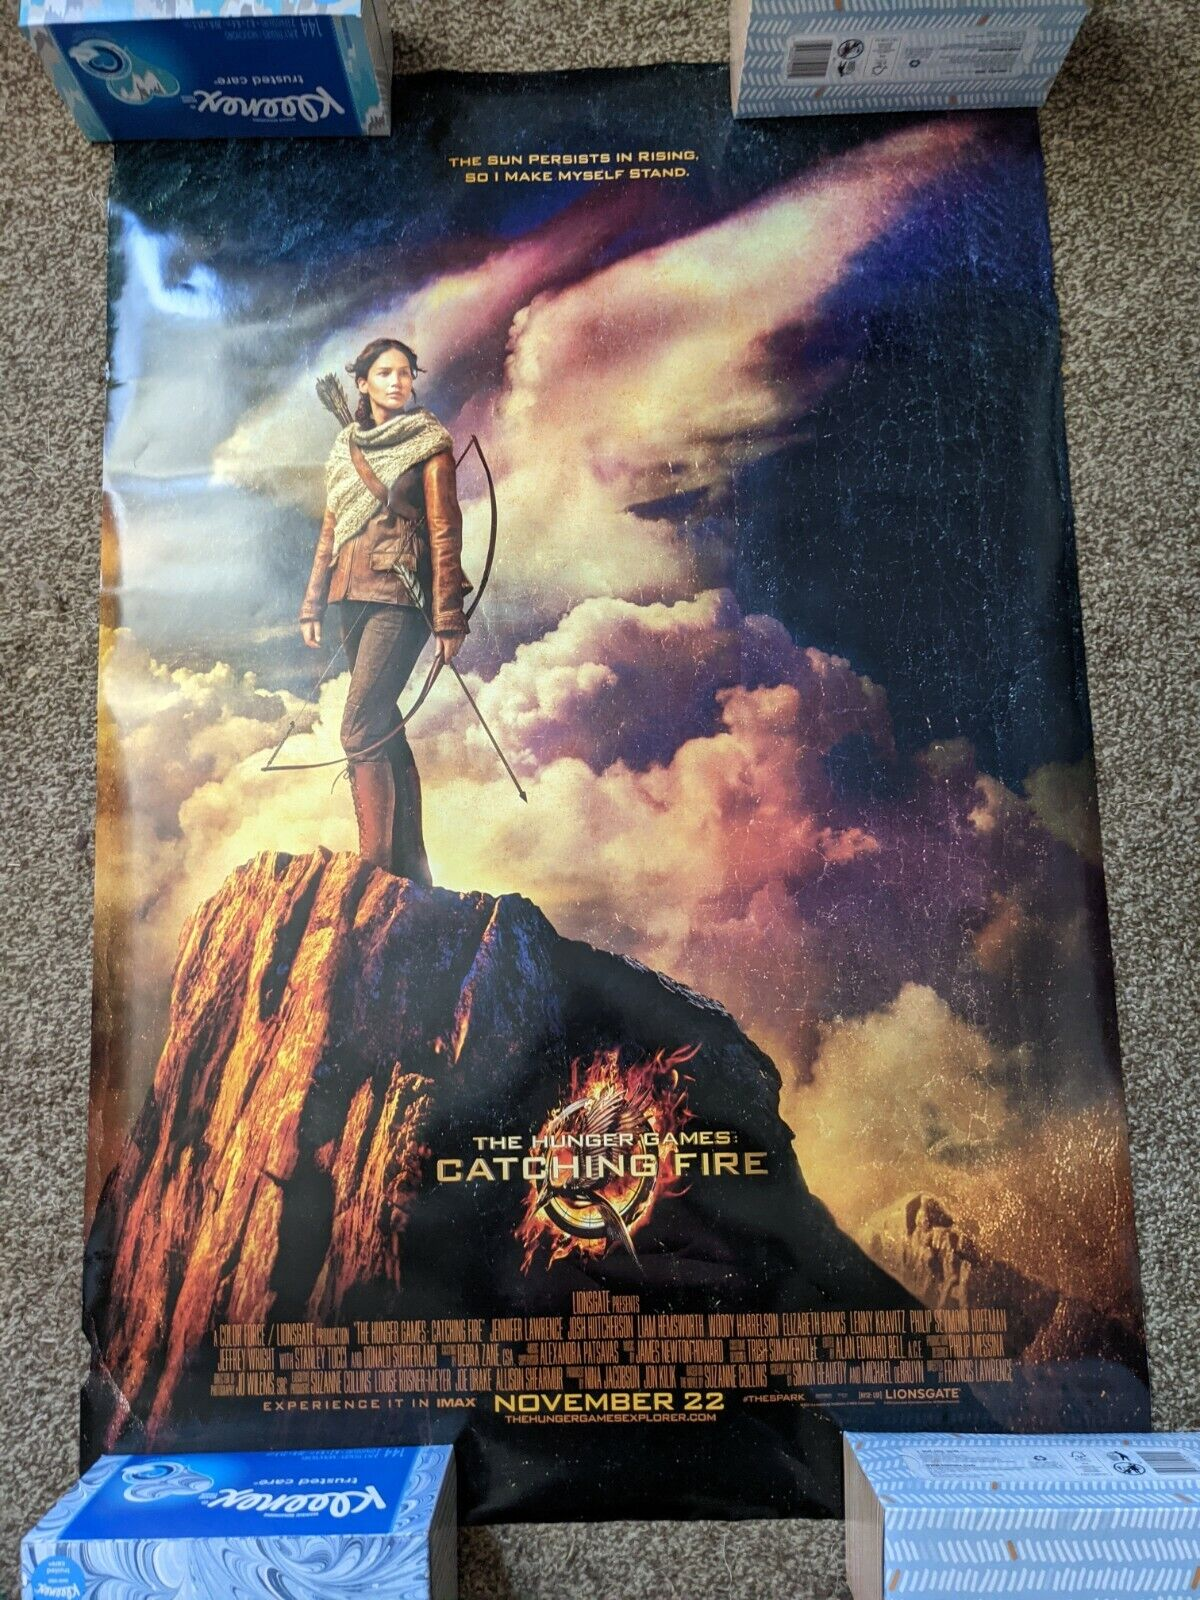 The Hunger Games Catching Fire Original Movie Poster With Jennifer Lawrence - $12.00